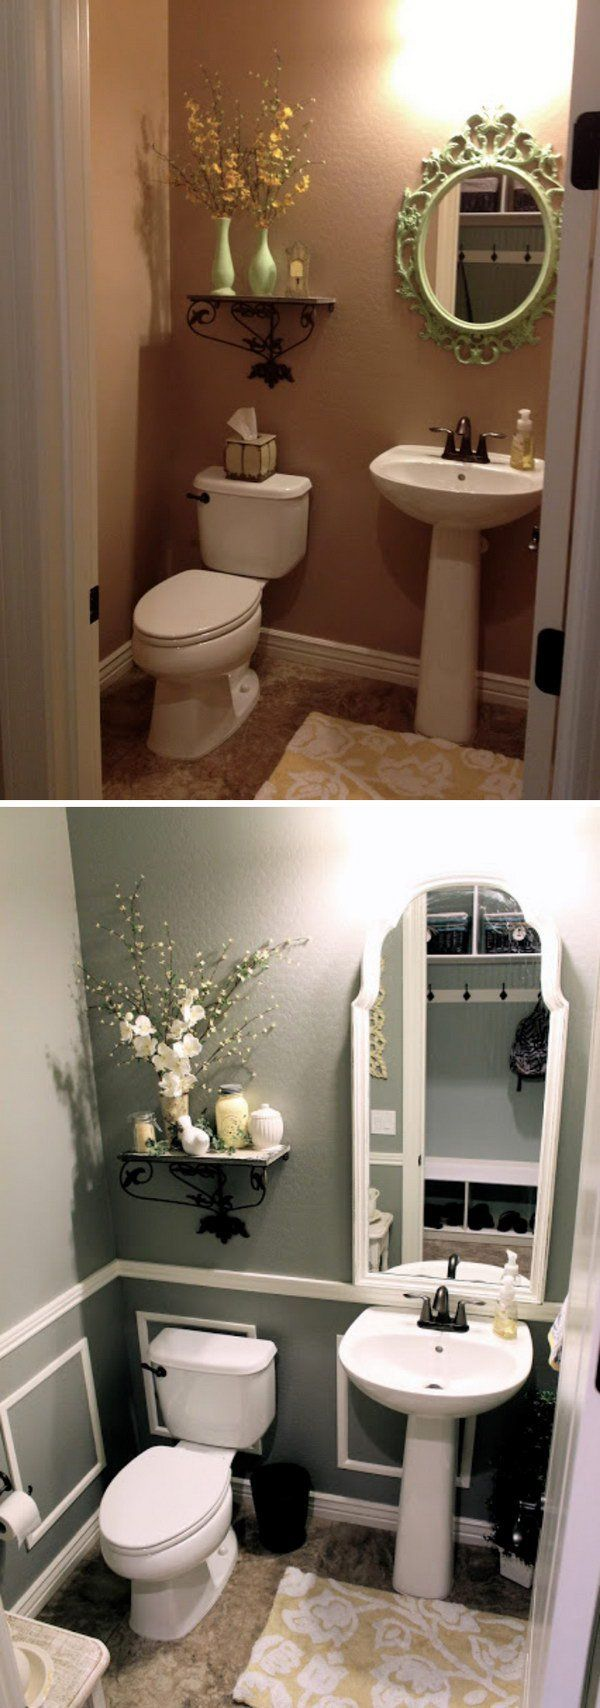 Best 25 small bathroom makeovers ideas only on pinterest for Small half bathroom ideas on a budget